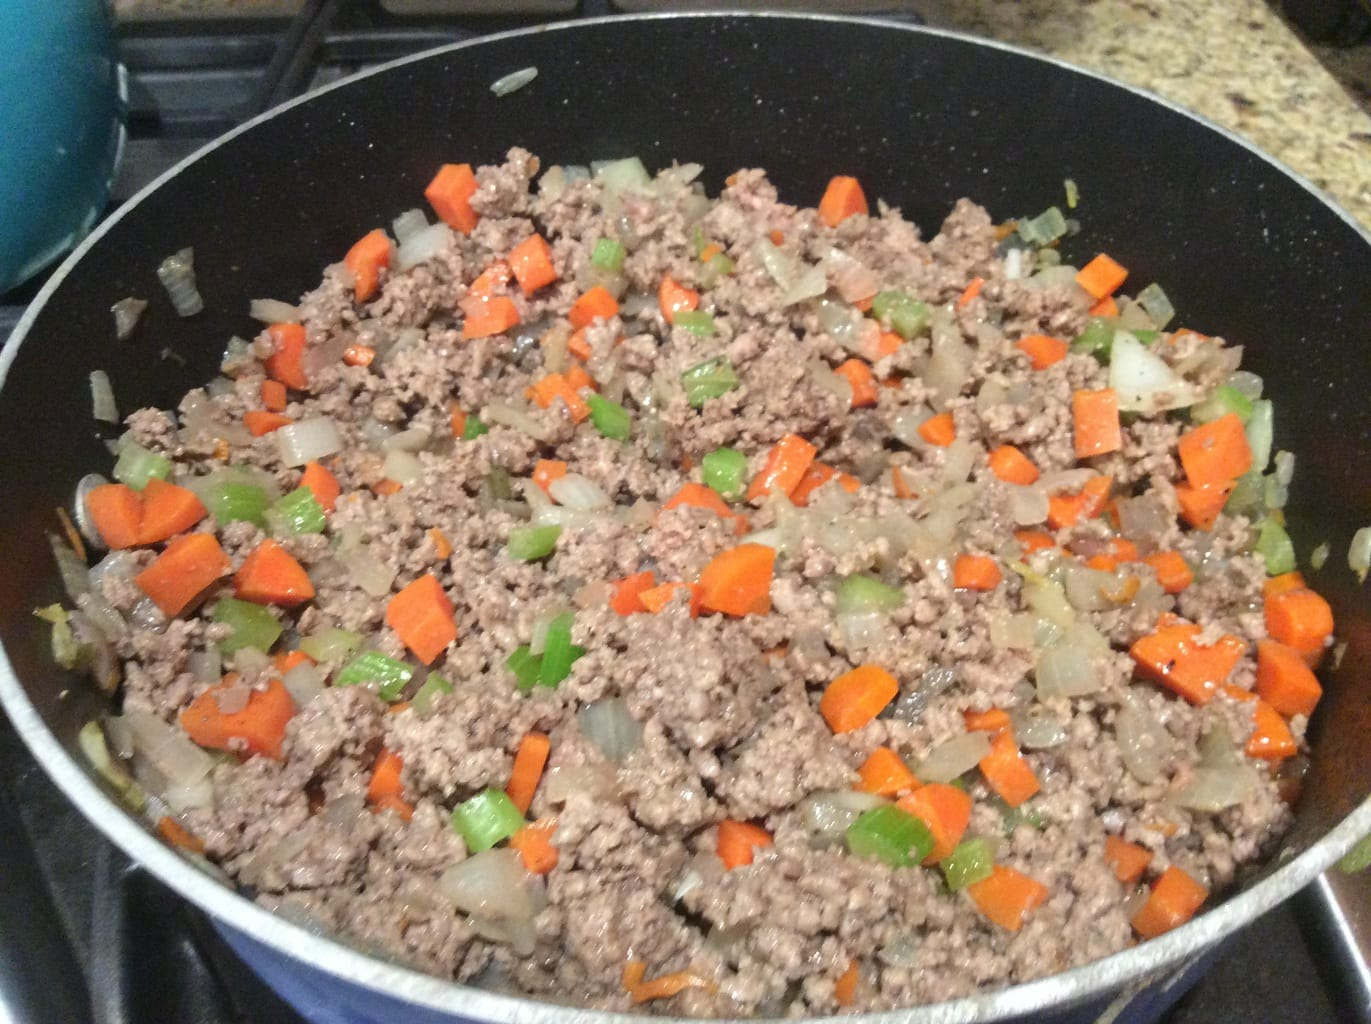 30 Minute Meal: Sloppy Joes